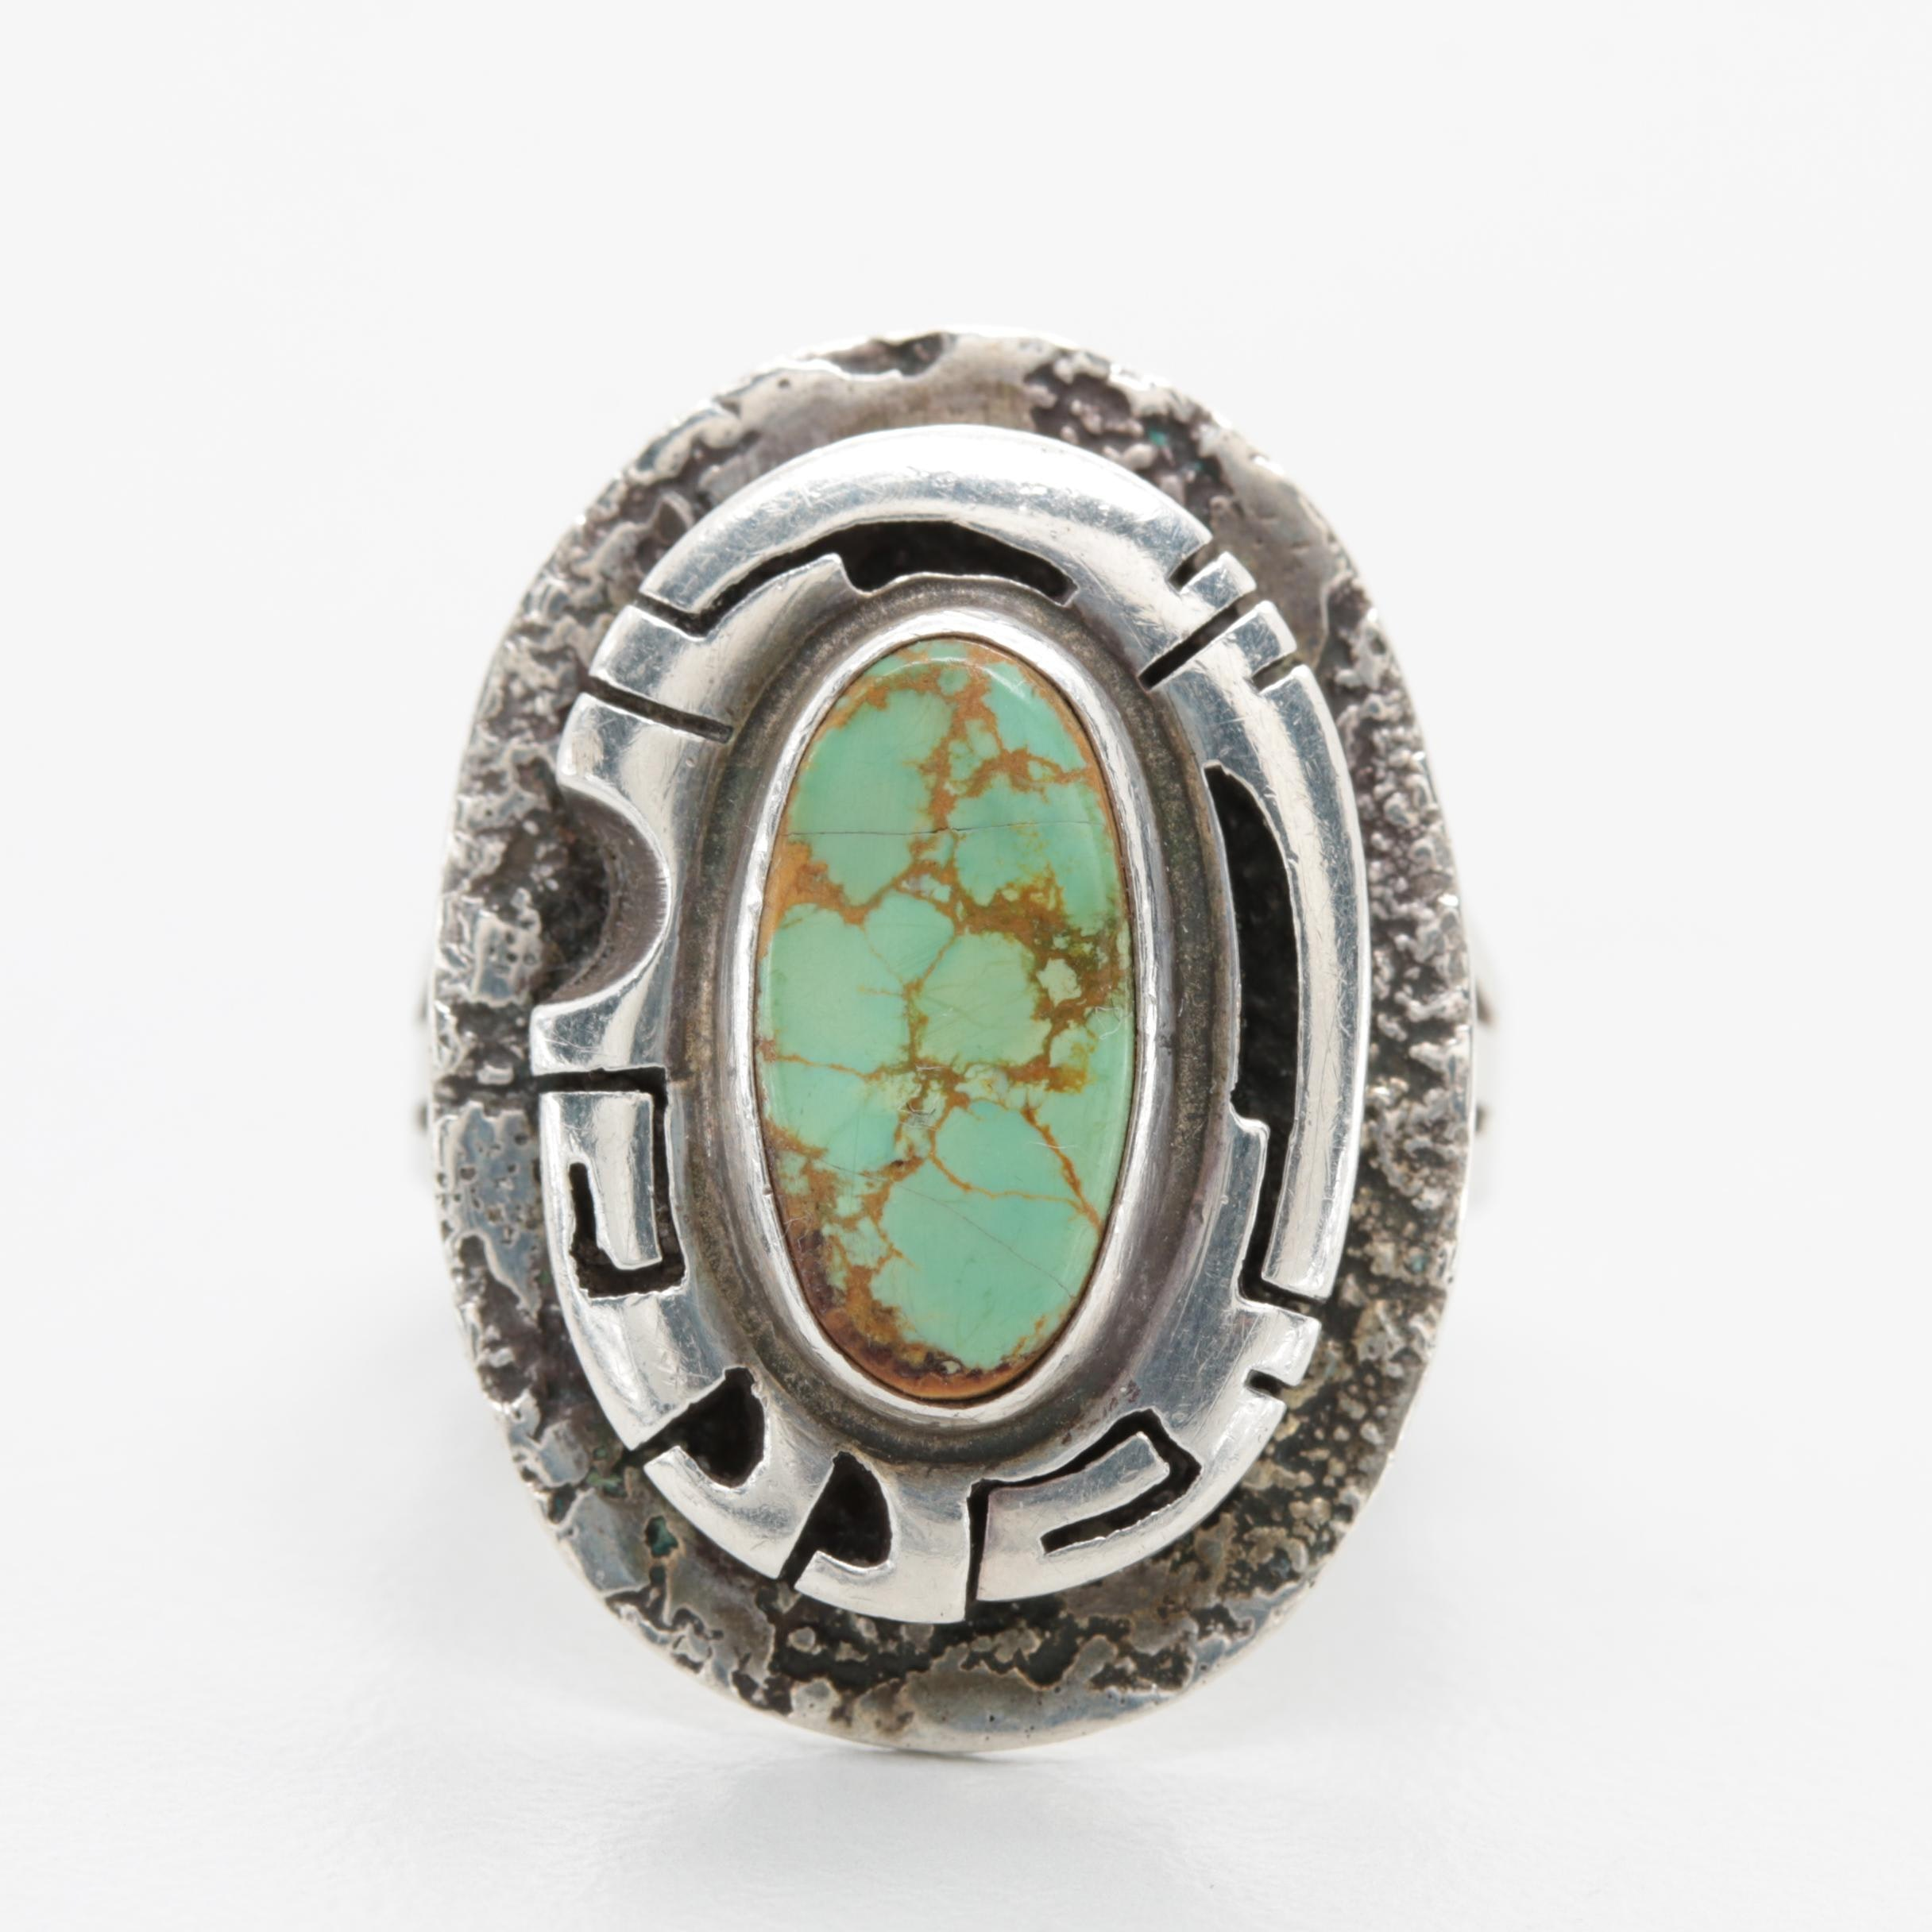 Jerry N Platero Navajo Diné Sterling Silver Turquoise Ring